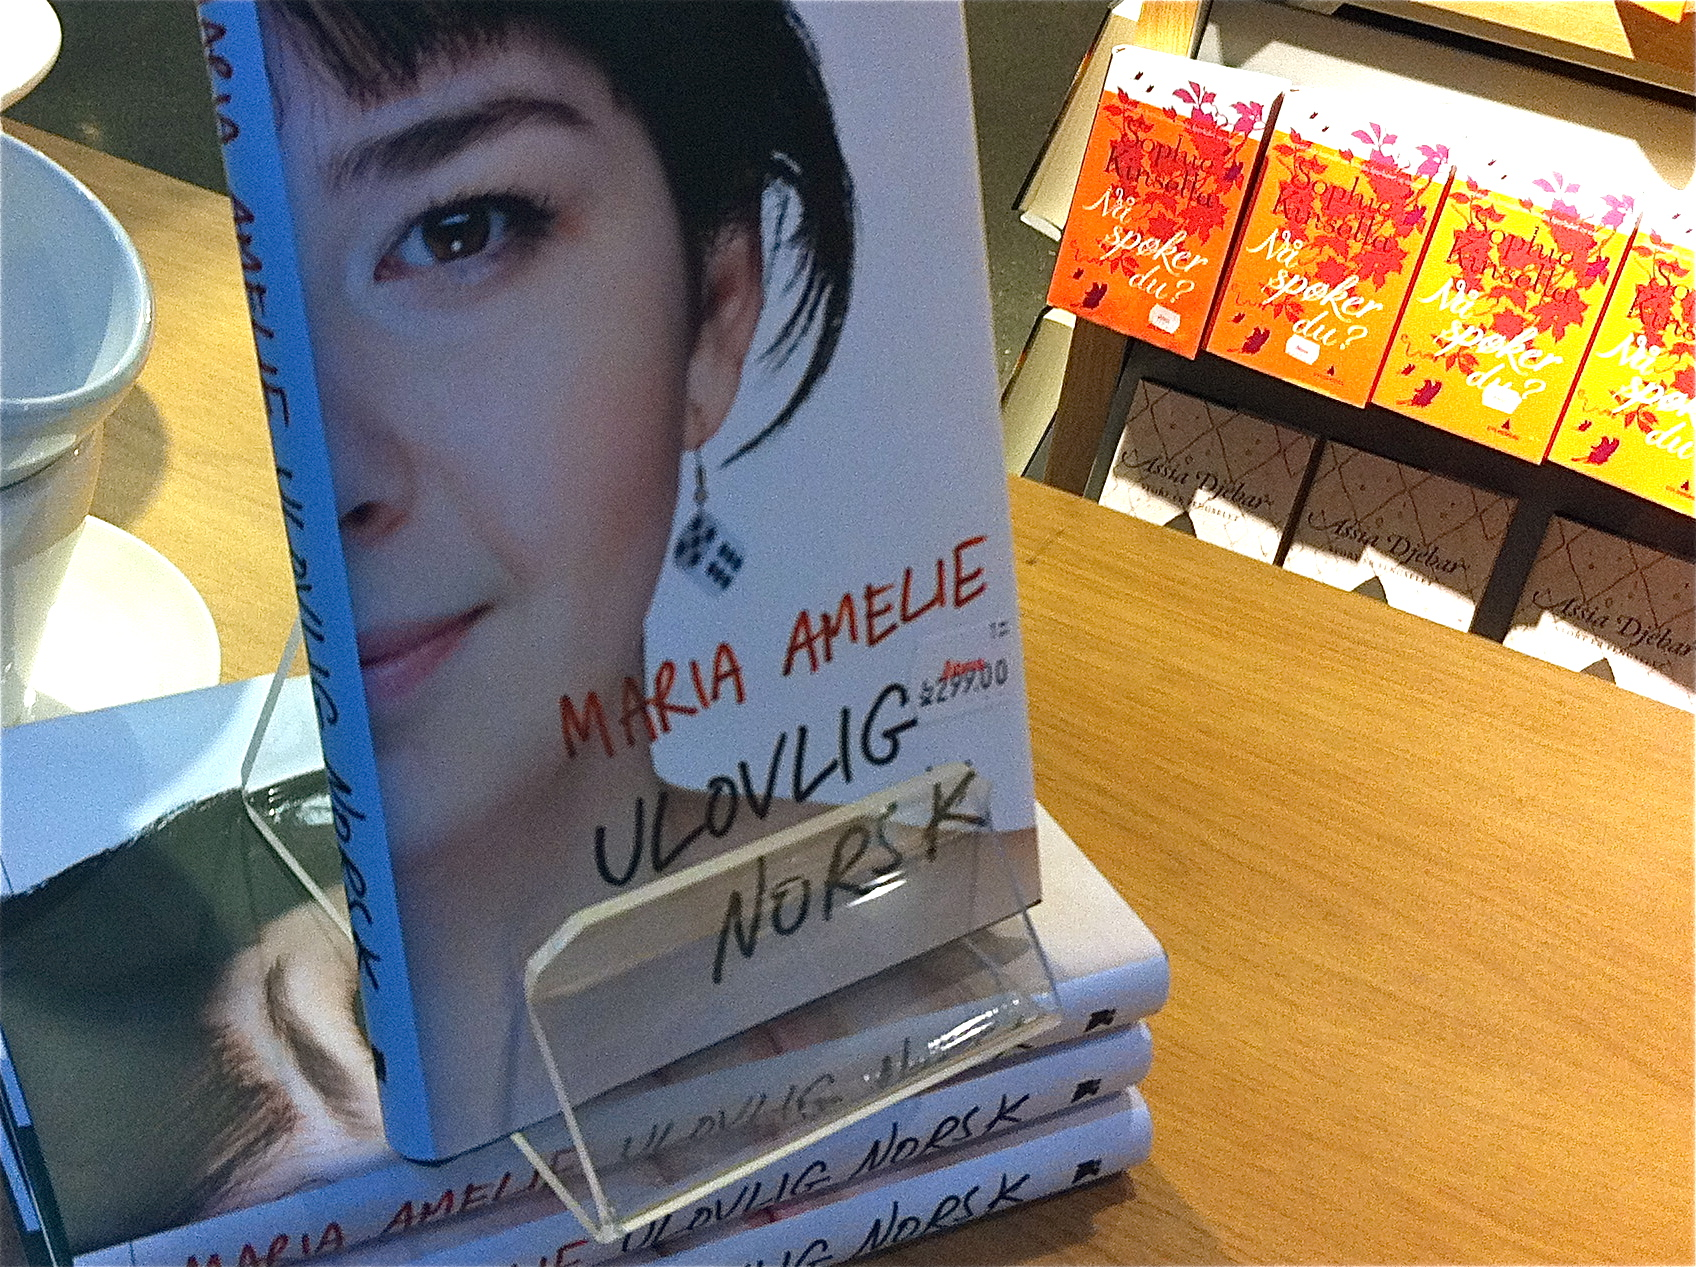 "Maria Amelie's book ""Illegally Norwegian"""